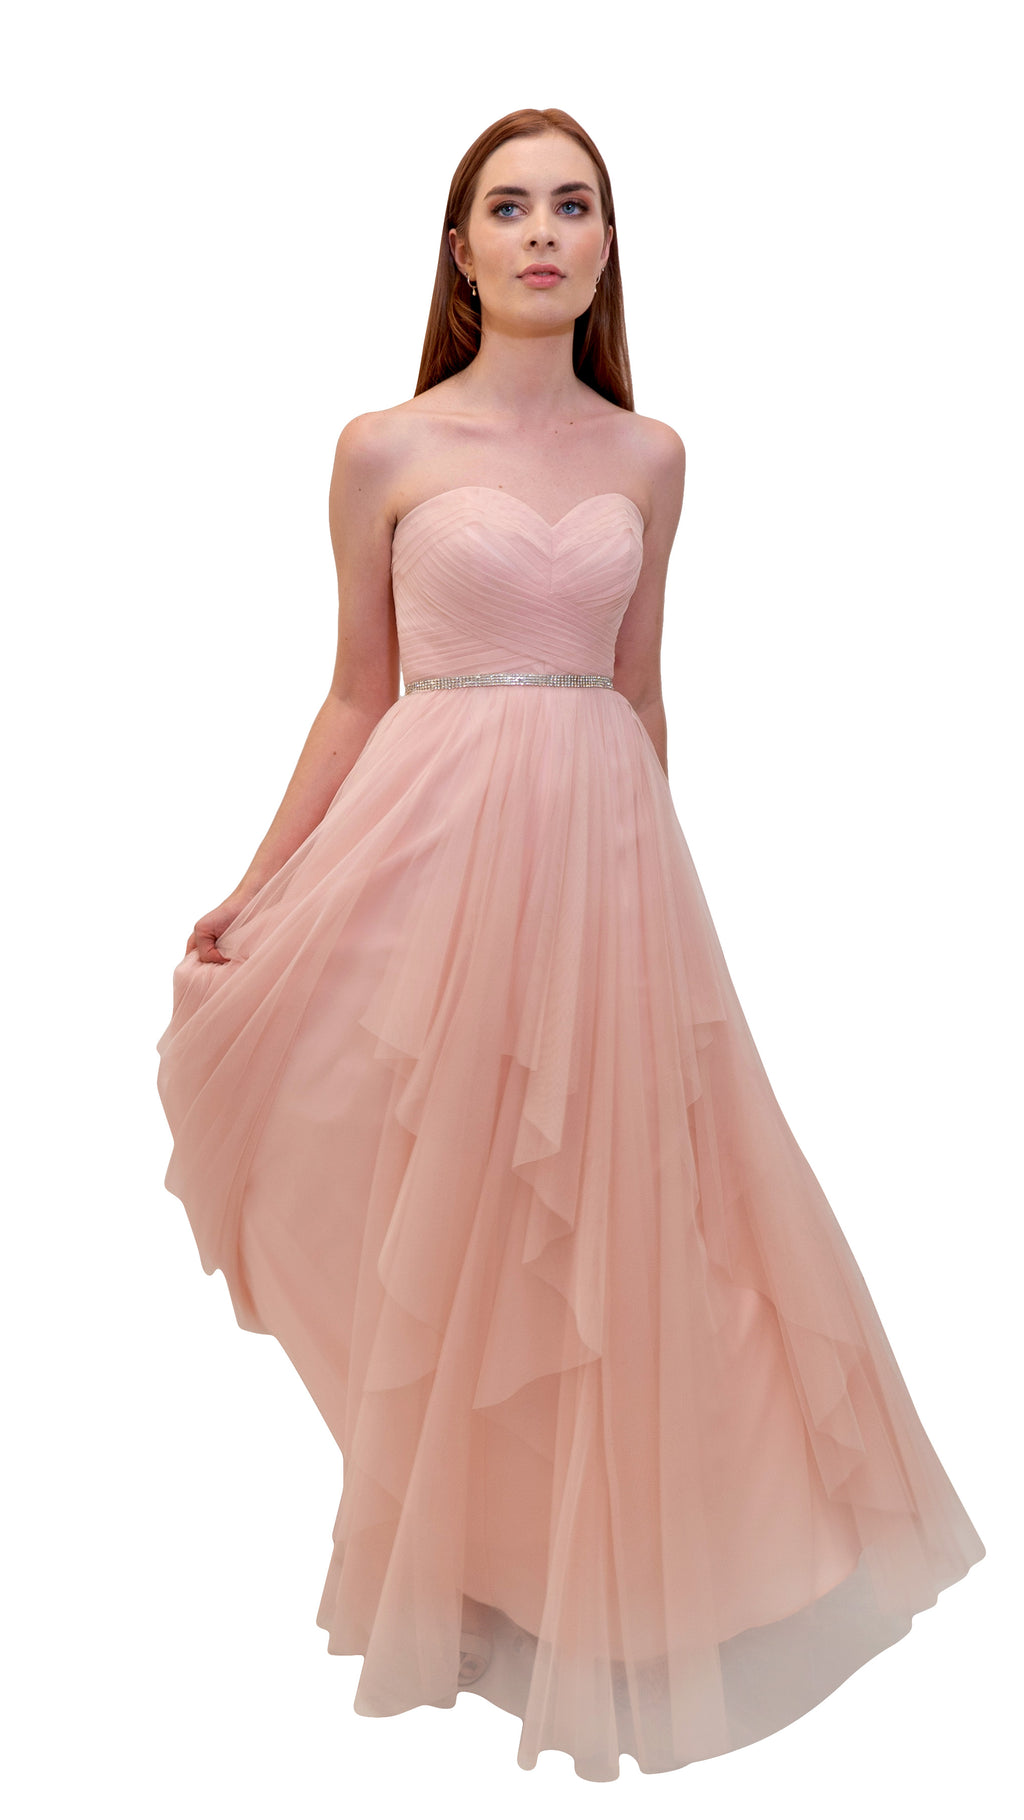 Bariano Petranzia Tulle Ball Gown Blush